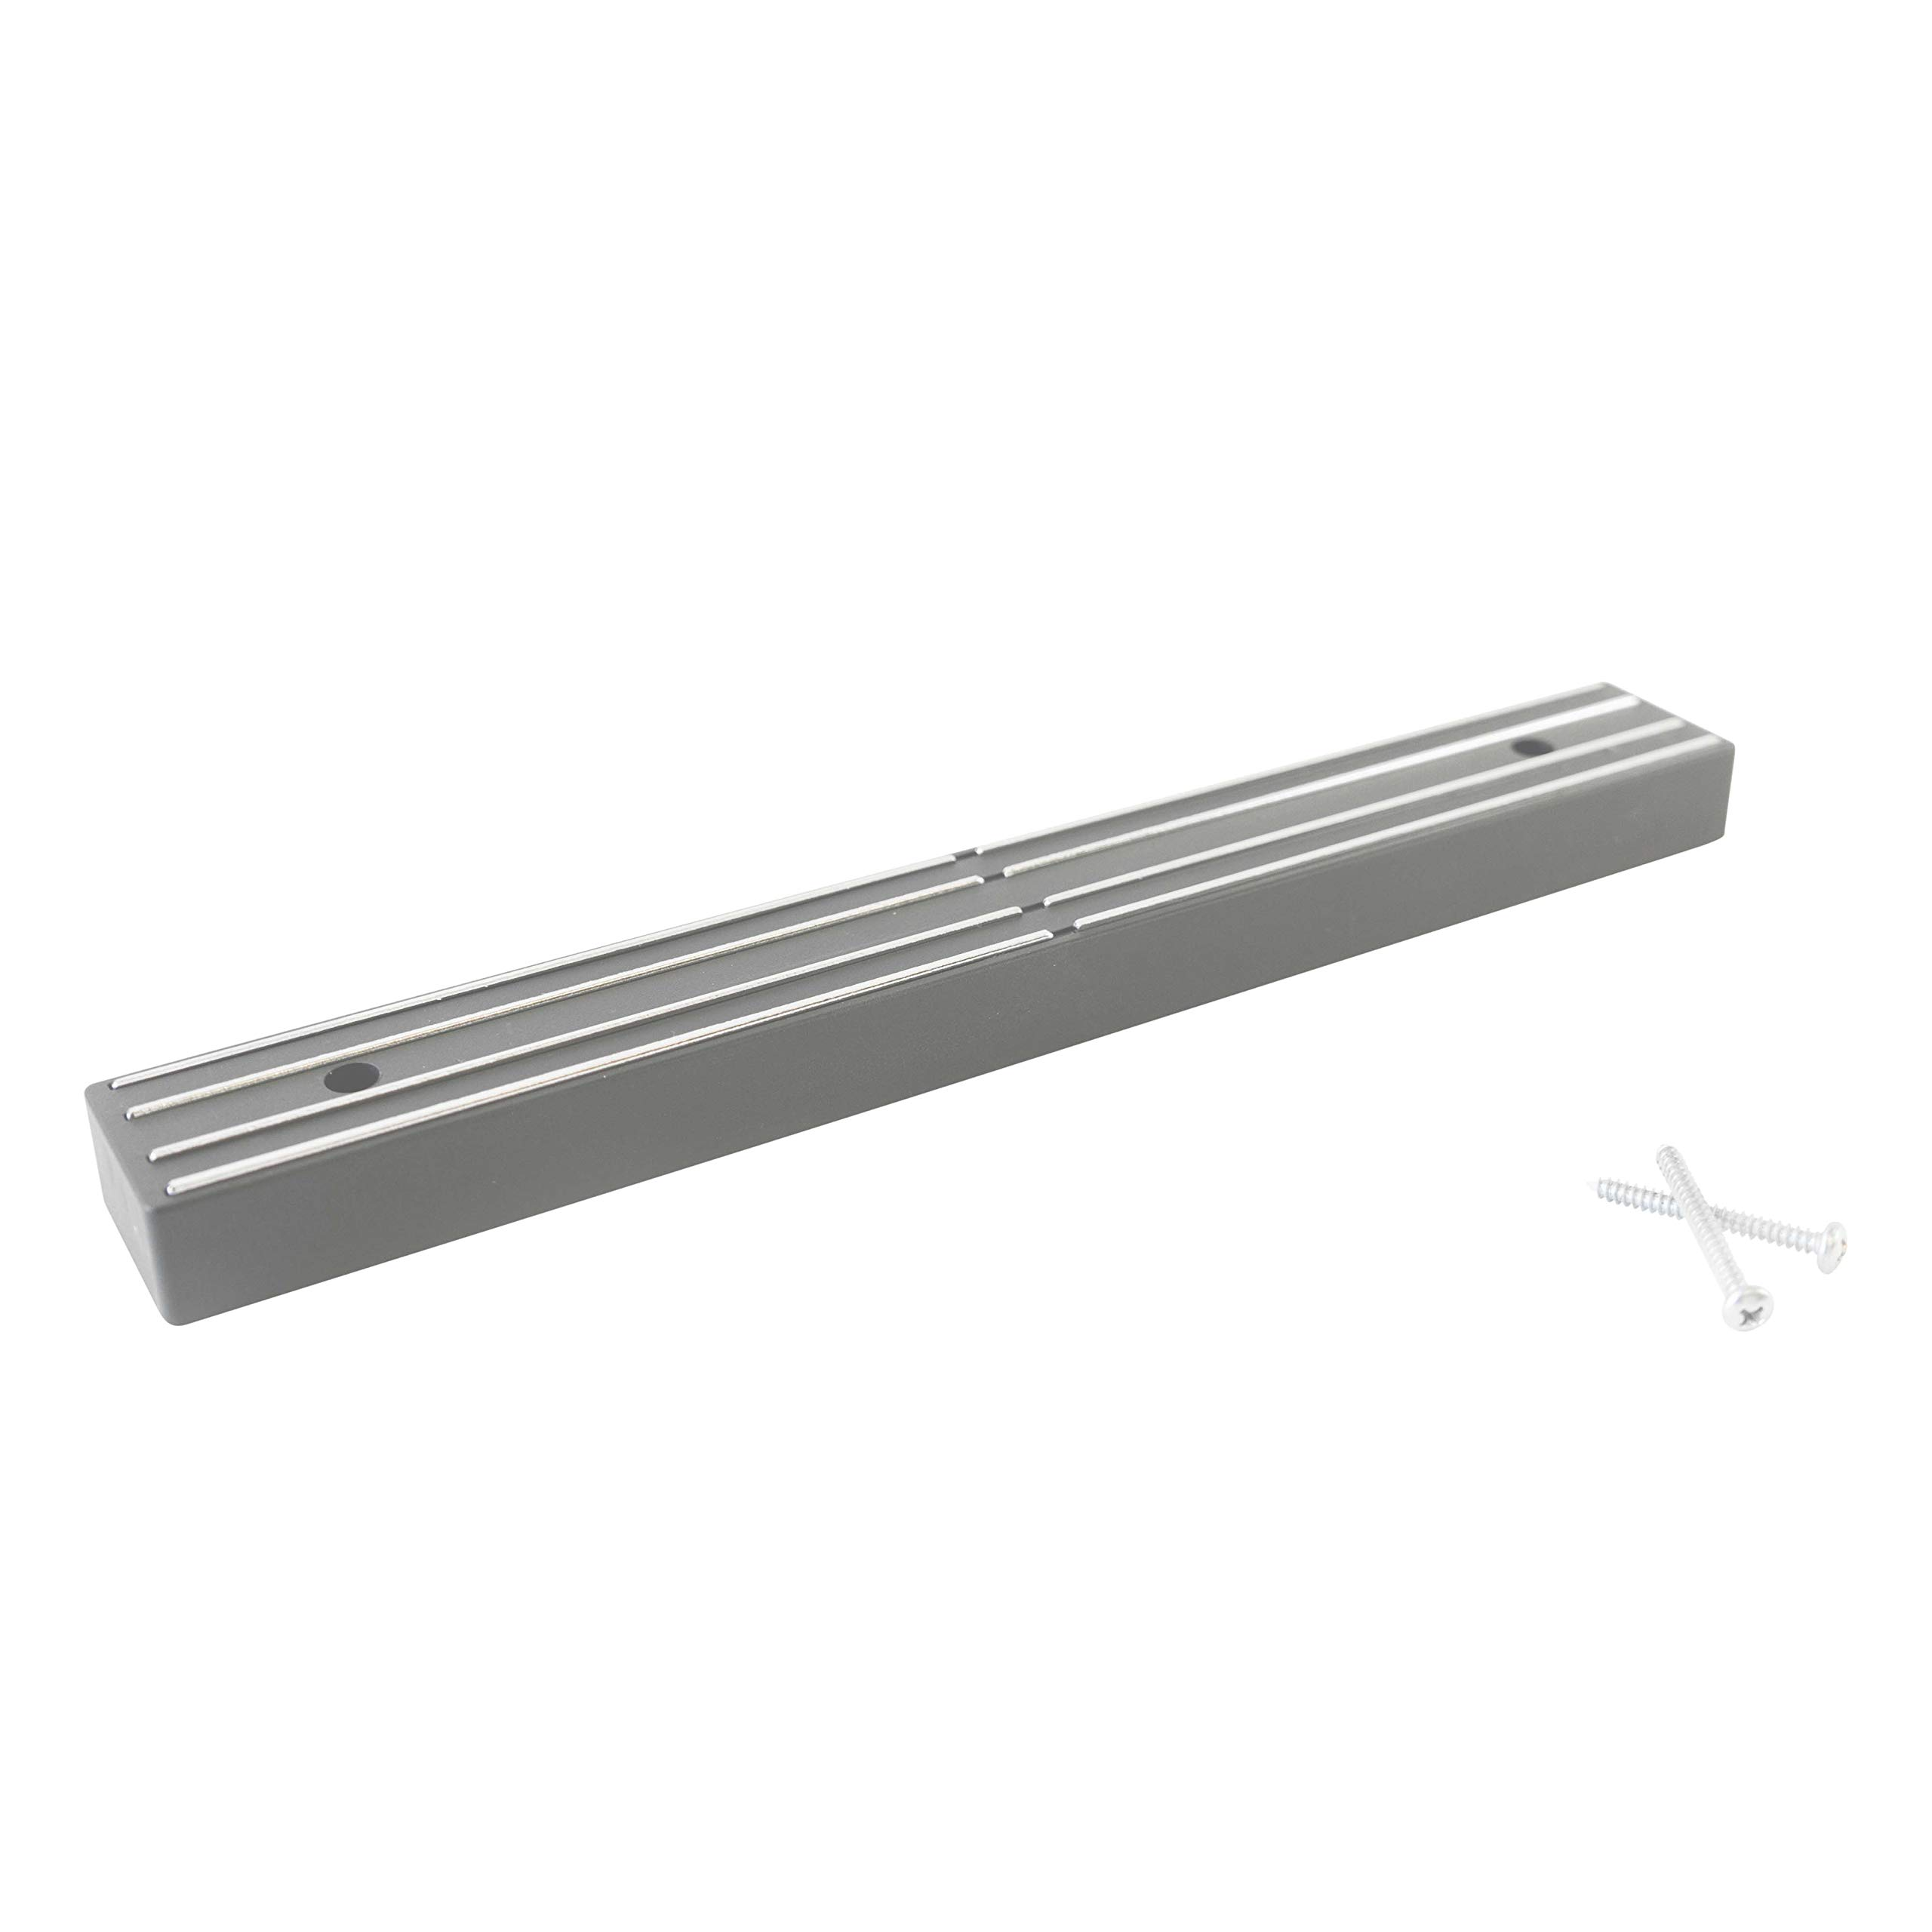 Master Magnetics 07578 Magnetic Tool Holder with Screw Mount, 12'' Wide, 30 lb per inch, Gray